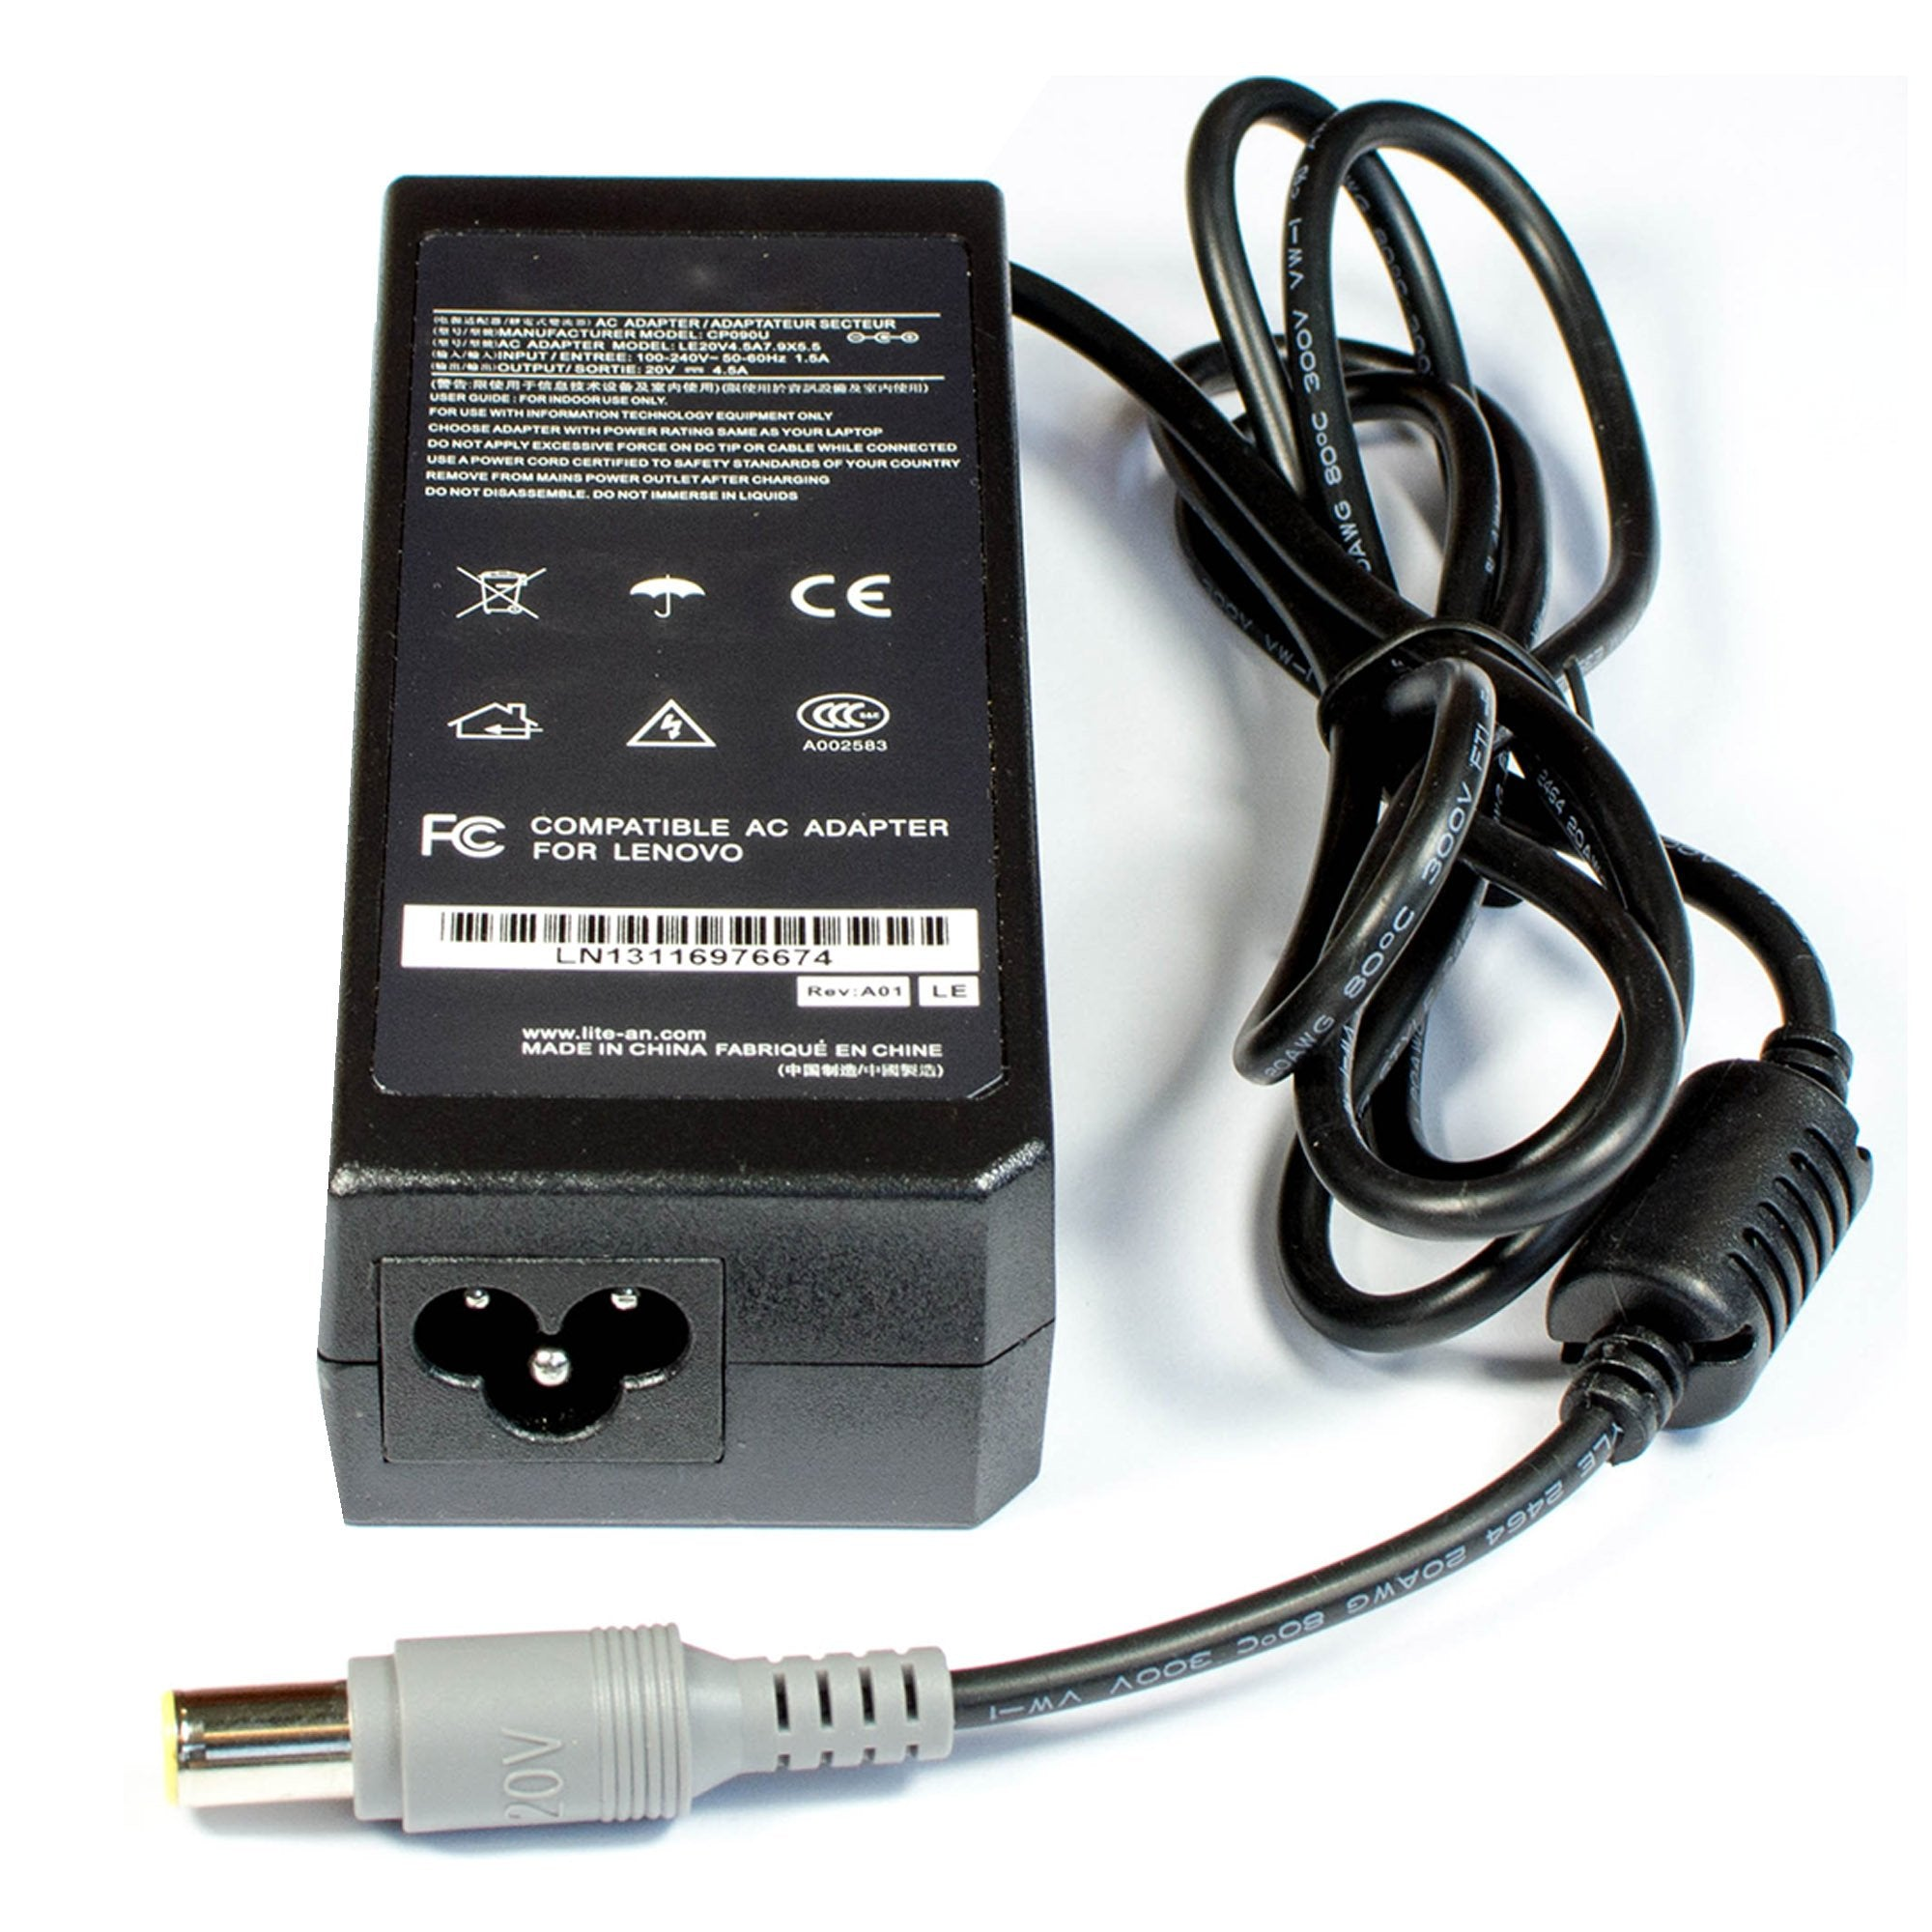 Lenovo ThinkPad Z60m 2529E3U 2529E7U 2529E8U Laptop AC Adapter Charger